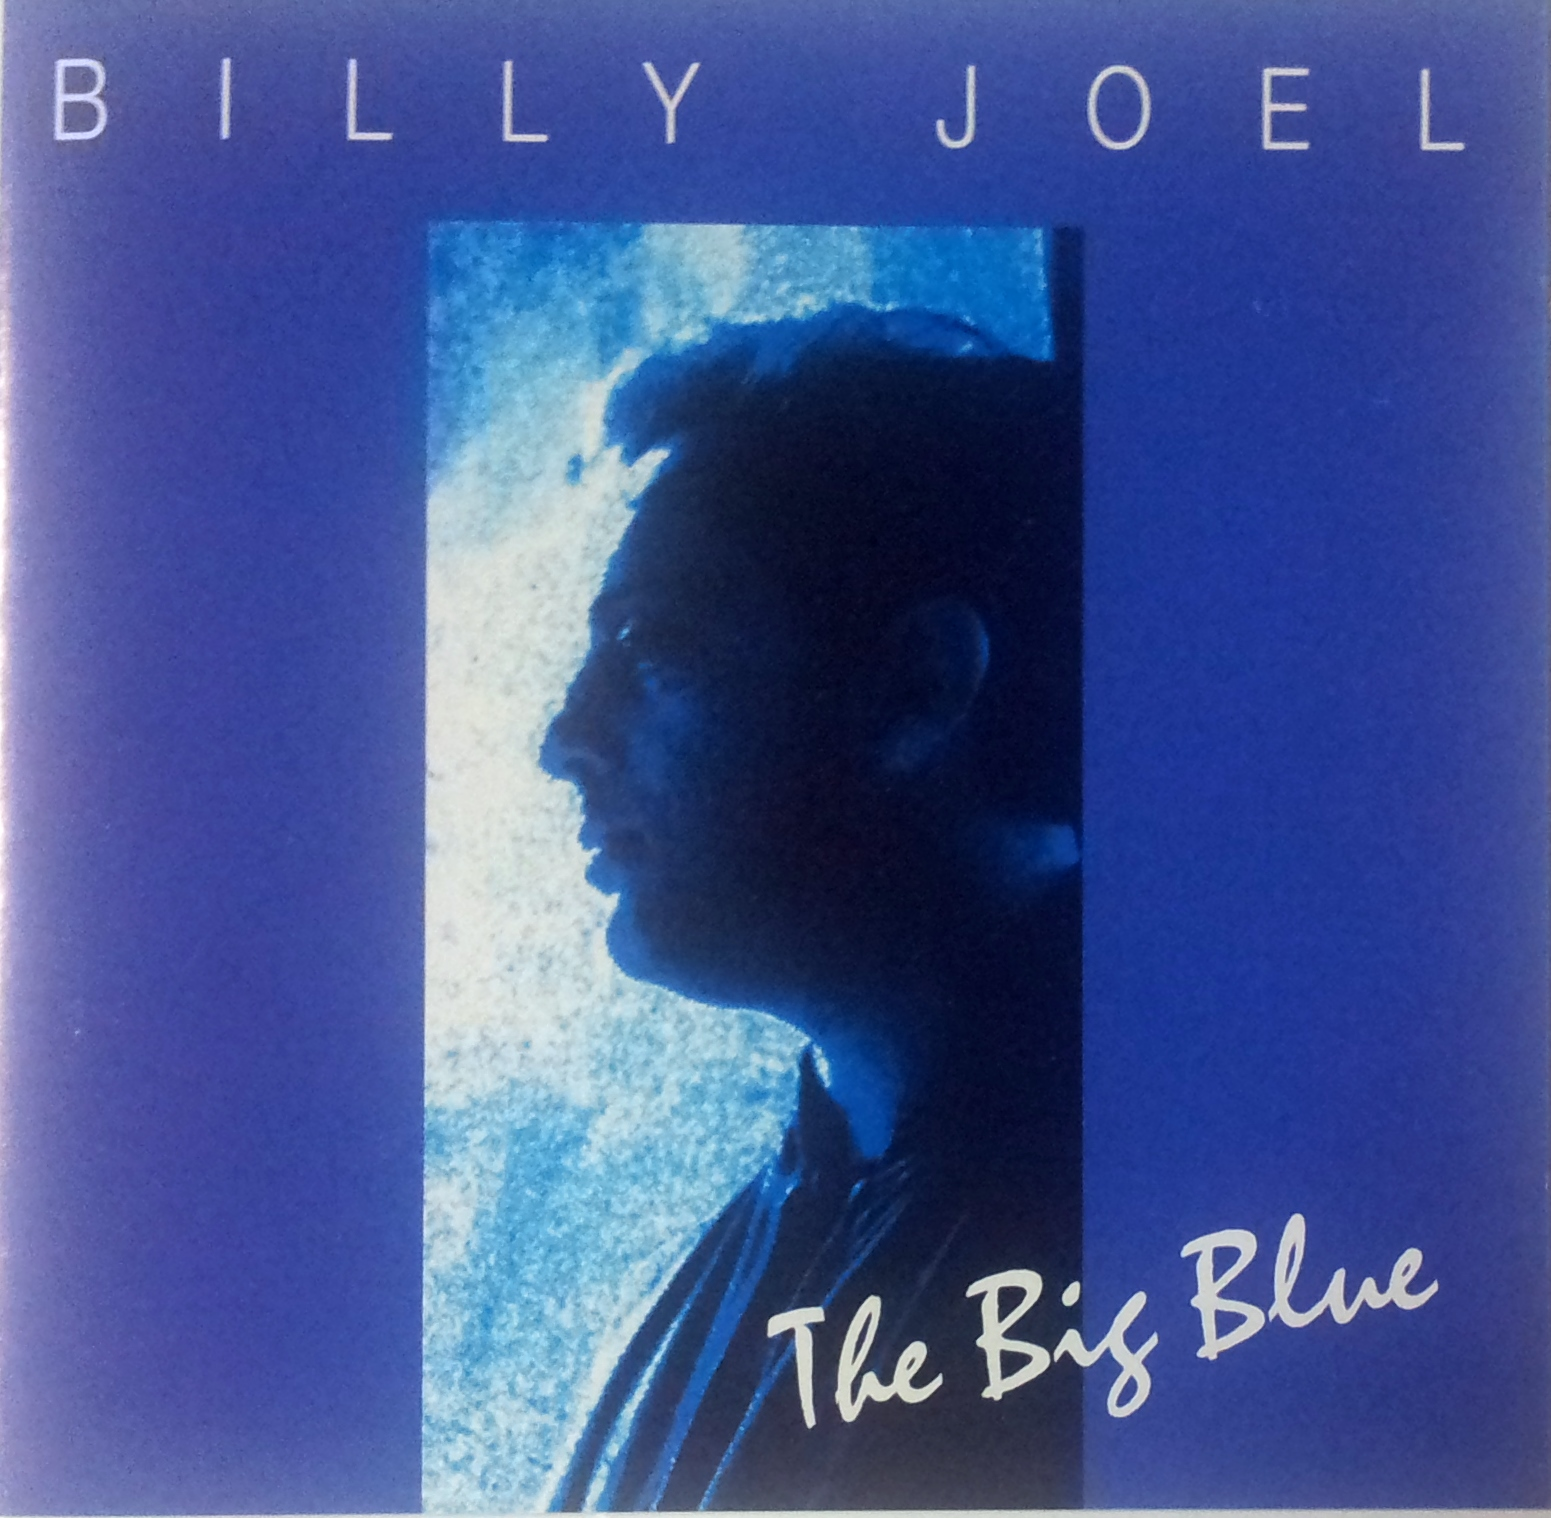 The big blue - Live in Los Angeles 1992